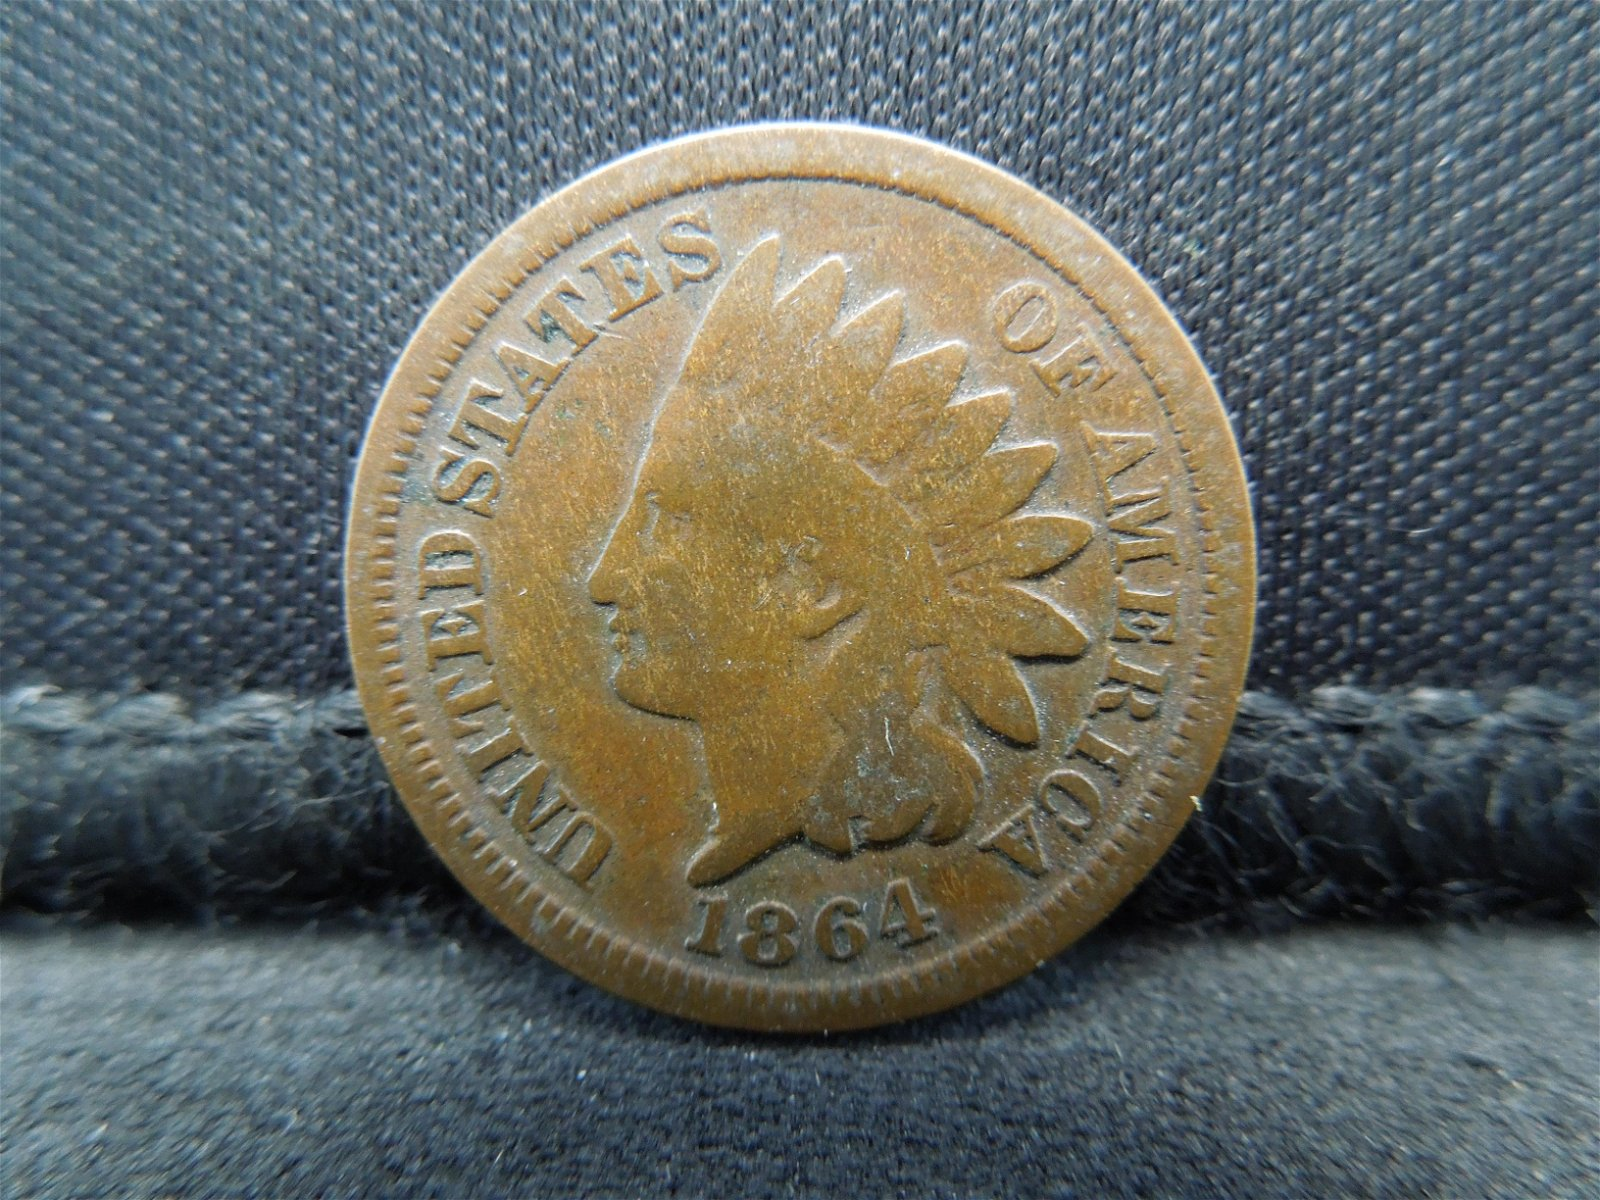 1864 United States Indian Head Cent.  Civil War Year.